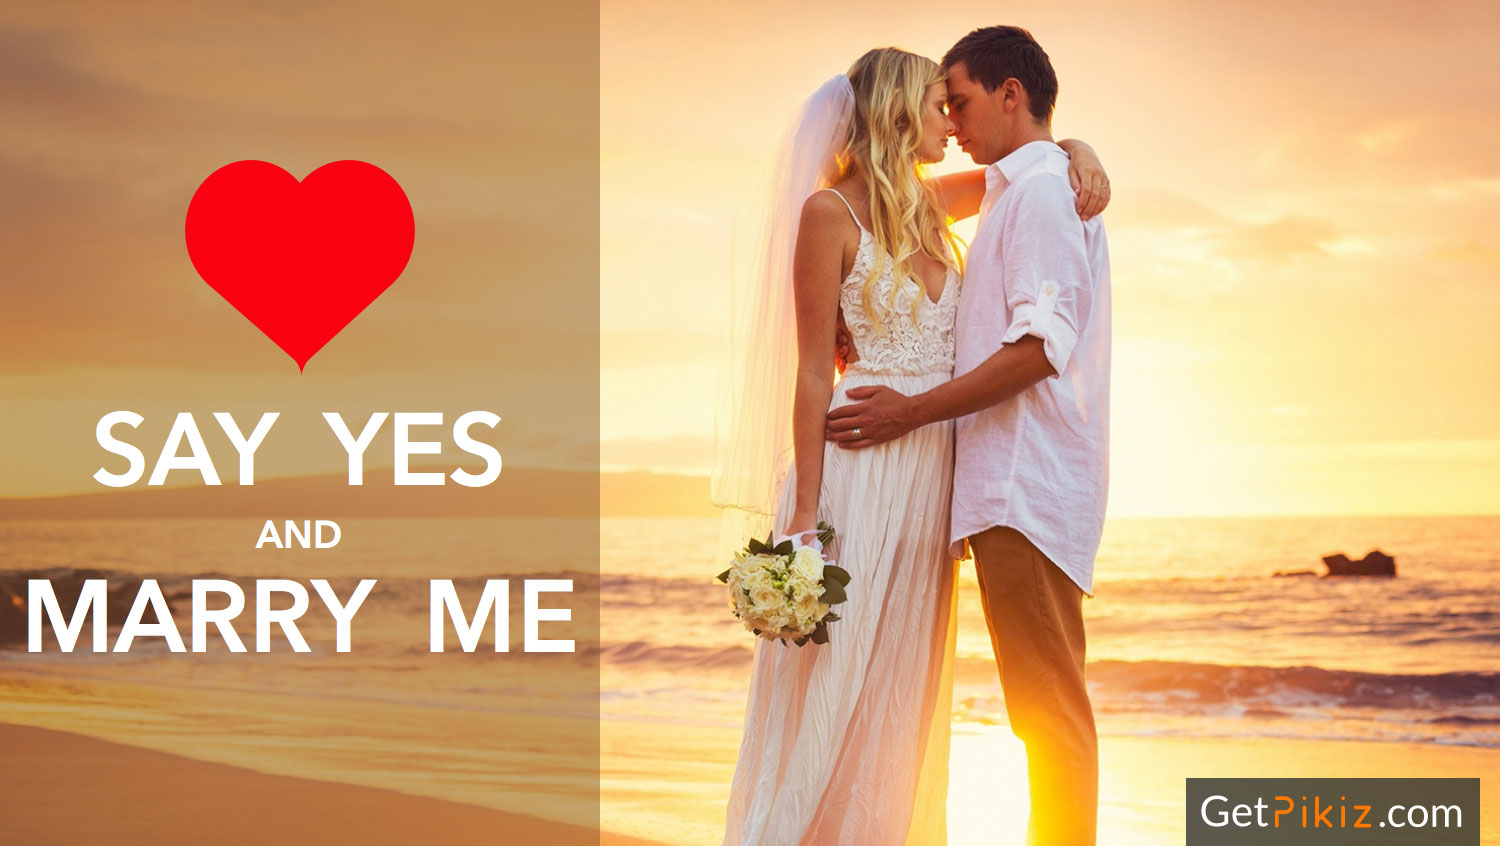 Say Yes and Marry Me.